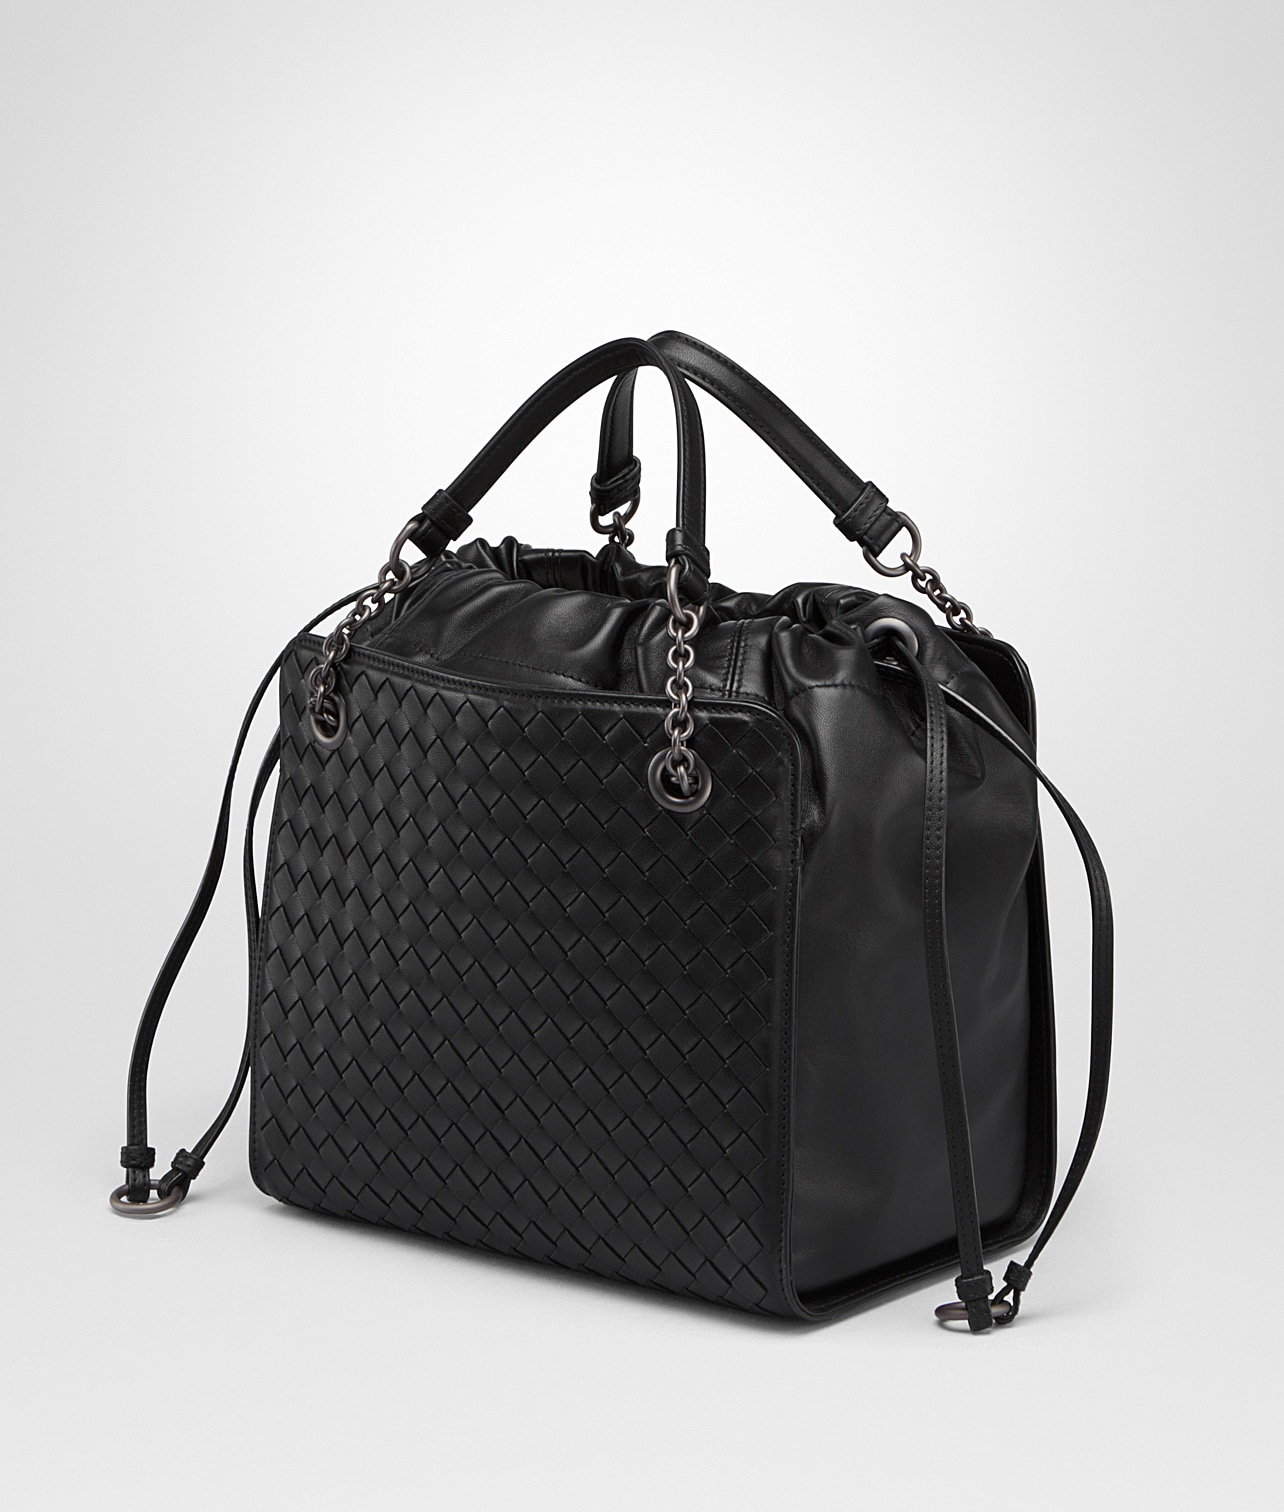 Bottega Veneta Nero Nappa with Intrecciato Small Tote Bag c71586c58eb3a